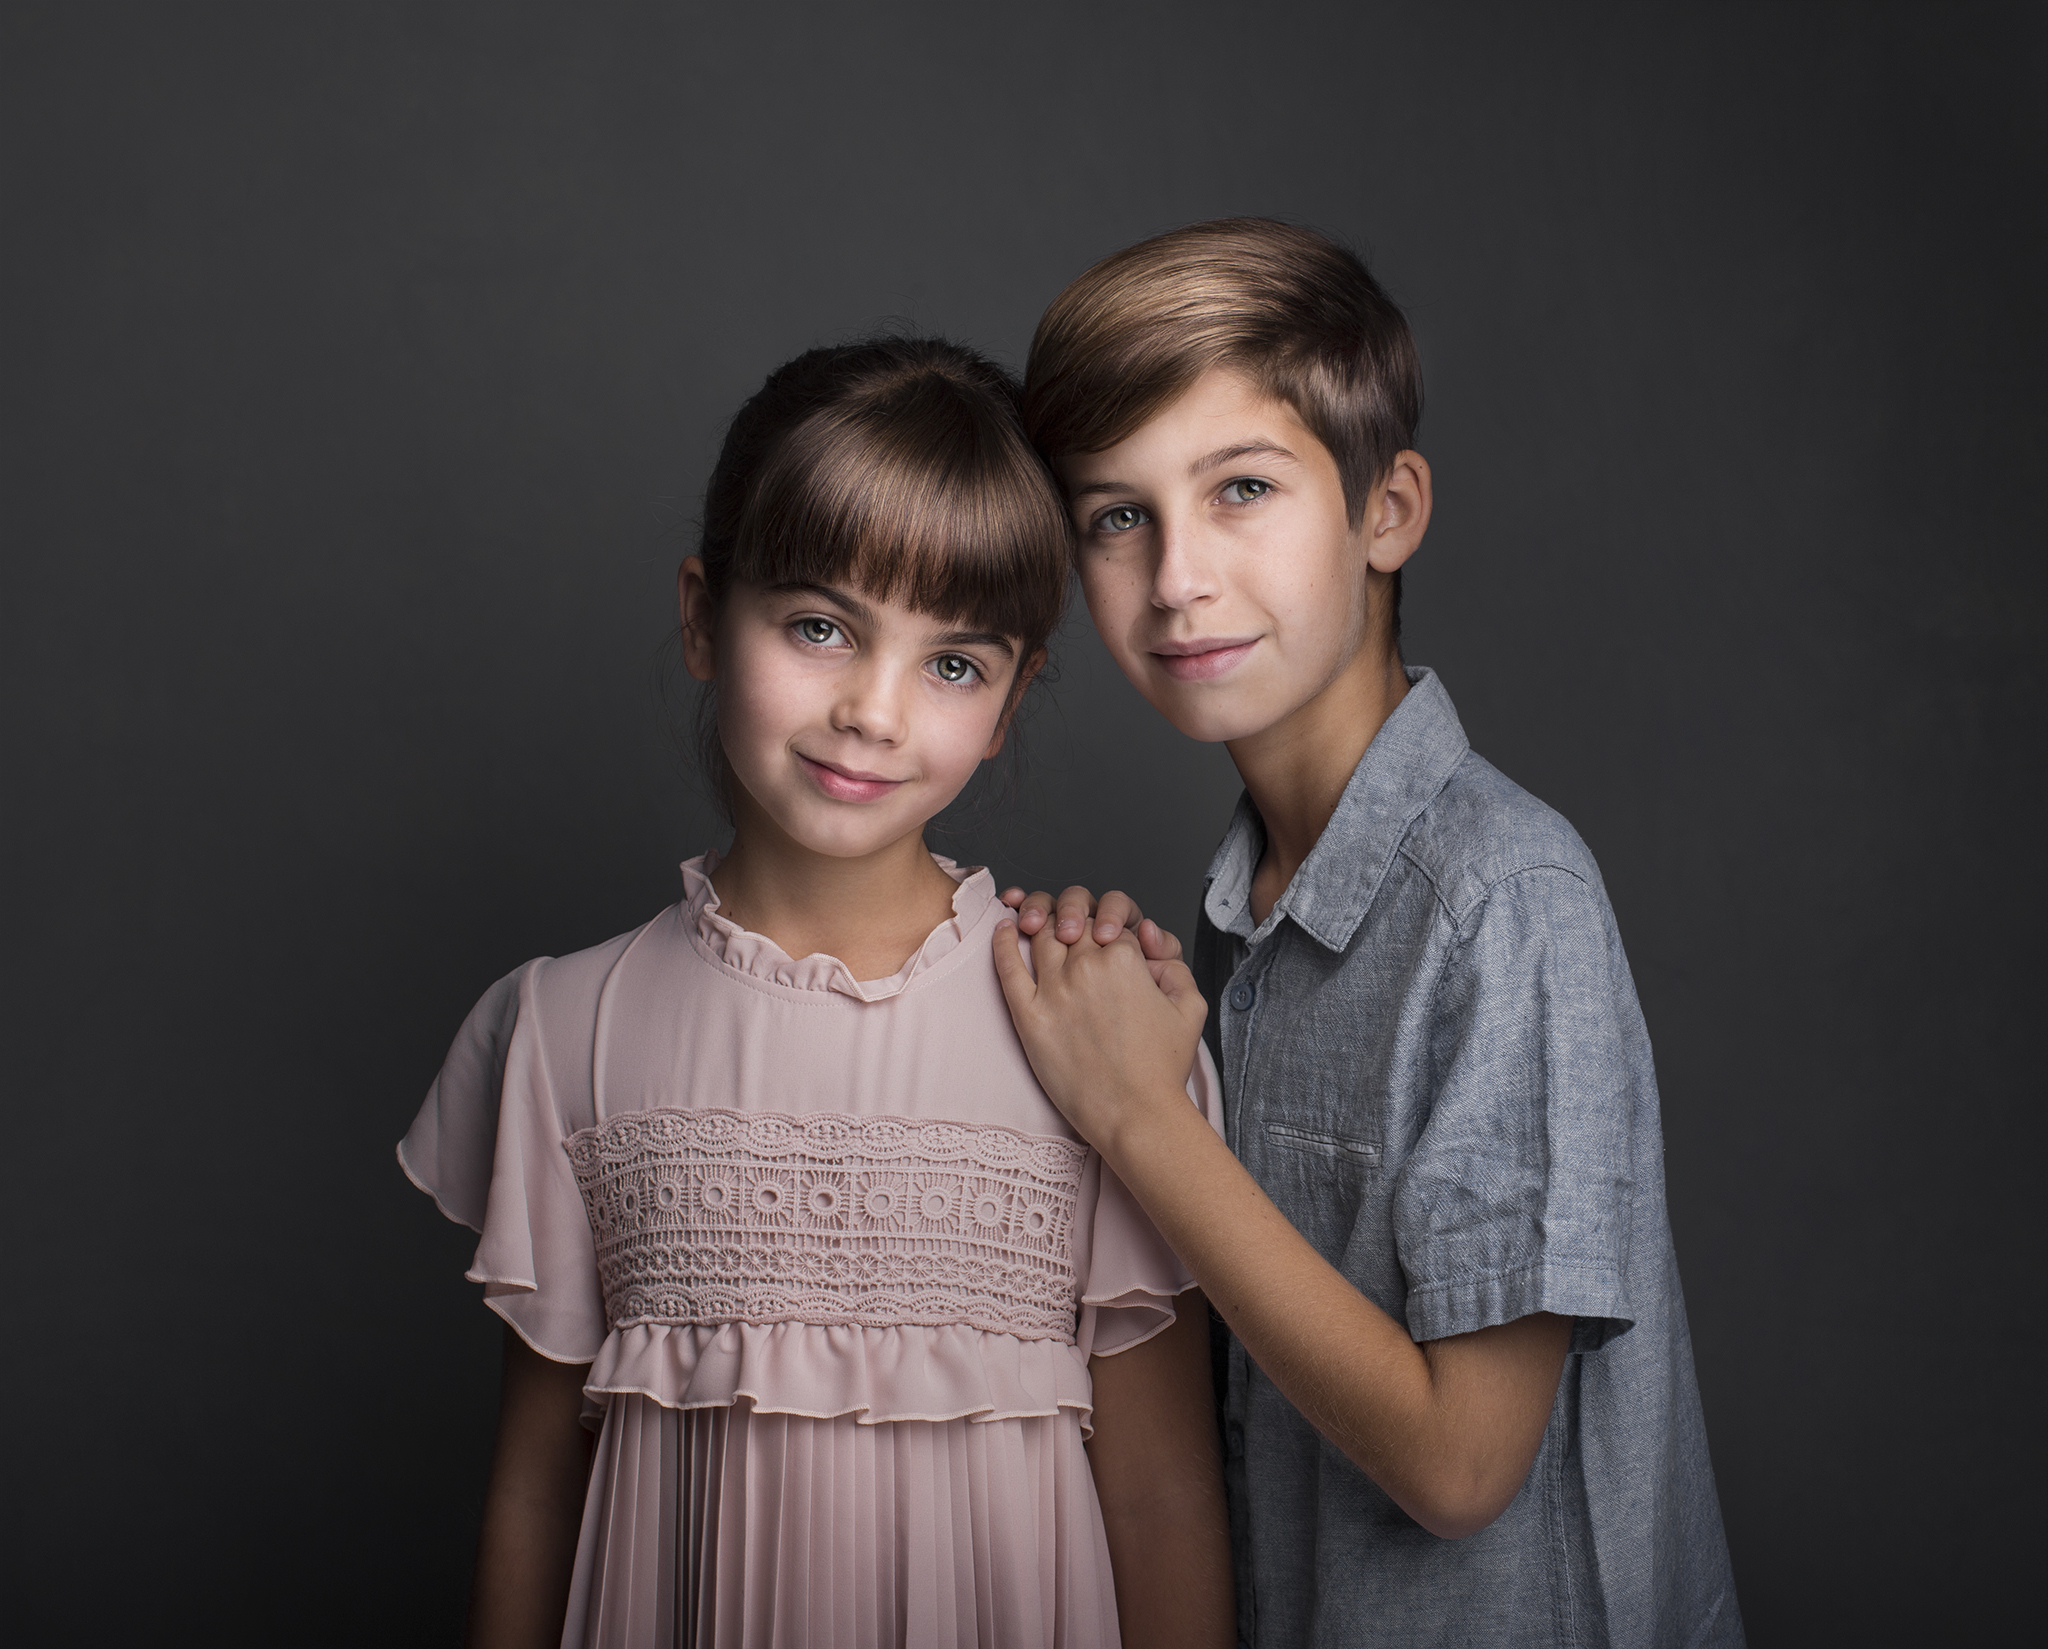 elizabethgfineartphotography_kingslangley_model_actor_chloe_alex1_family_portrait3.jpg